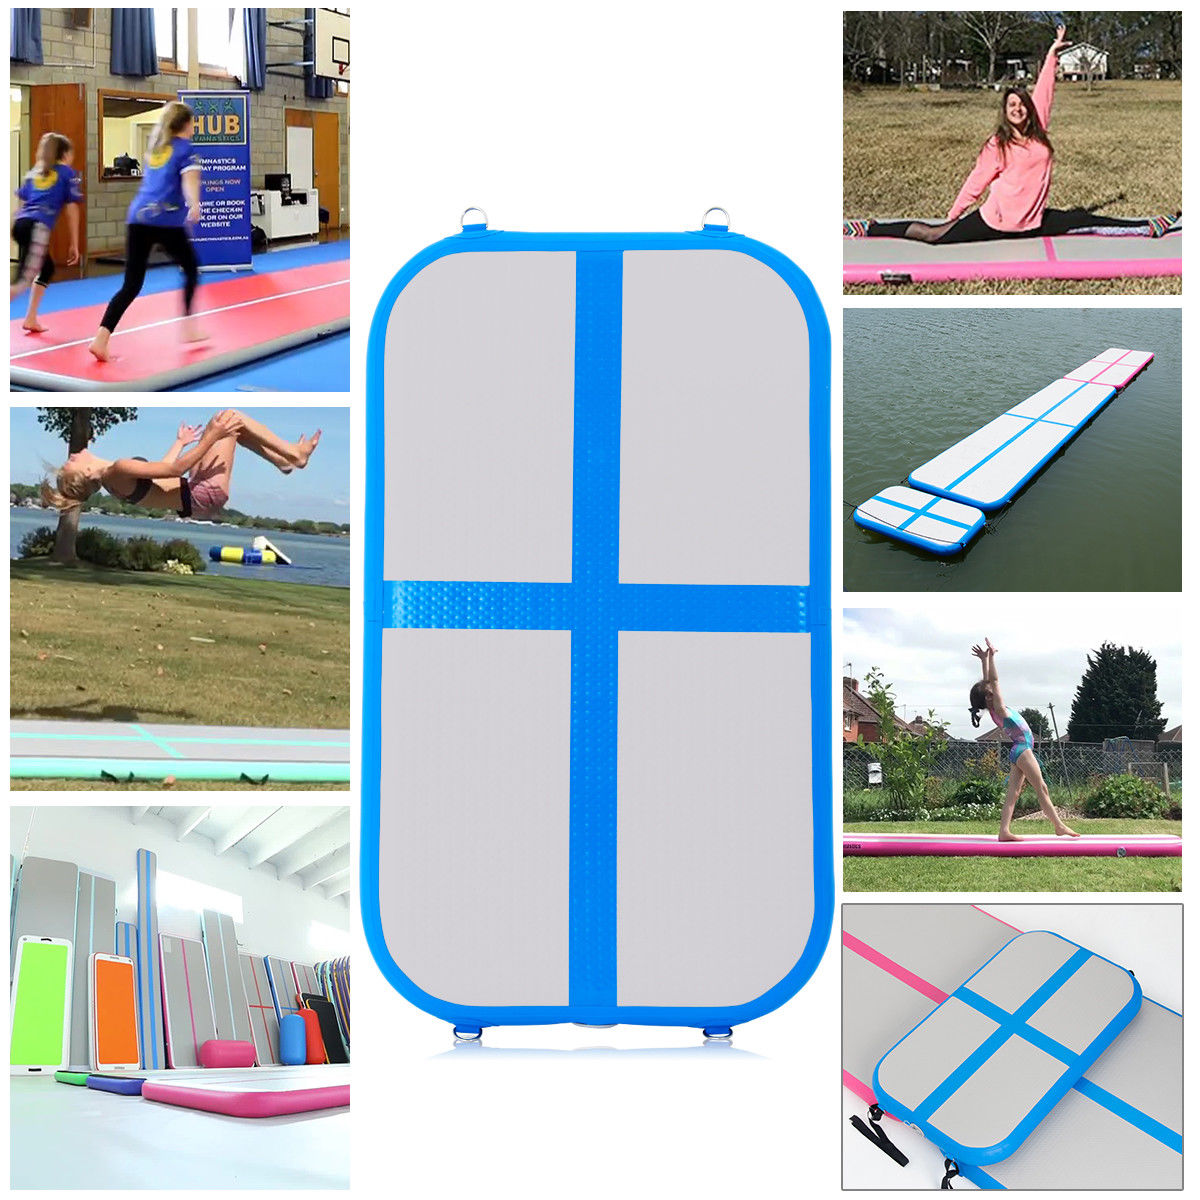 3.3' Inflatable Gymnastics Mat Air Track Floor Mat Water Buoyancy w/ Pump Blue - image 9 de 10